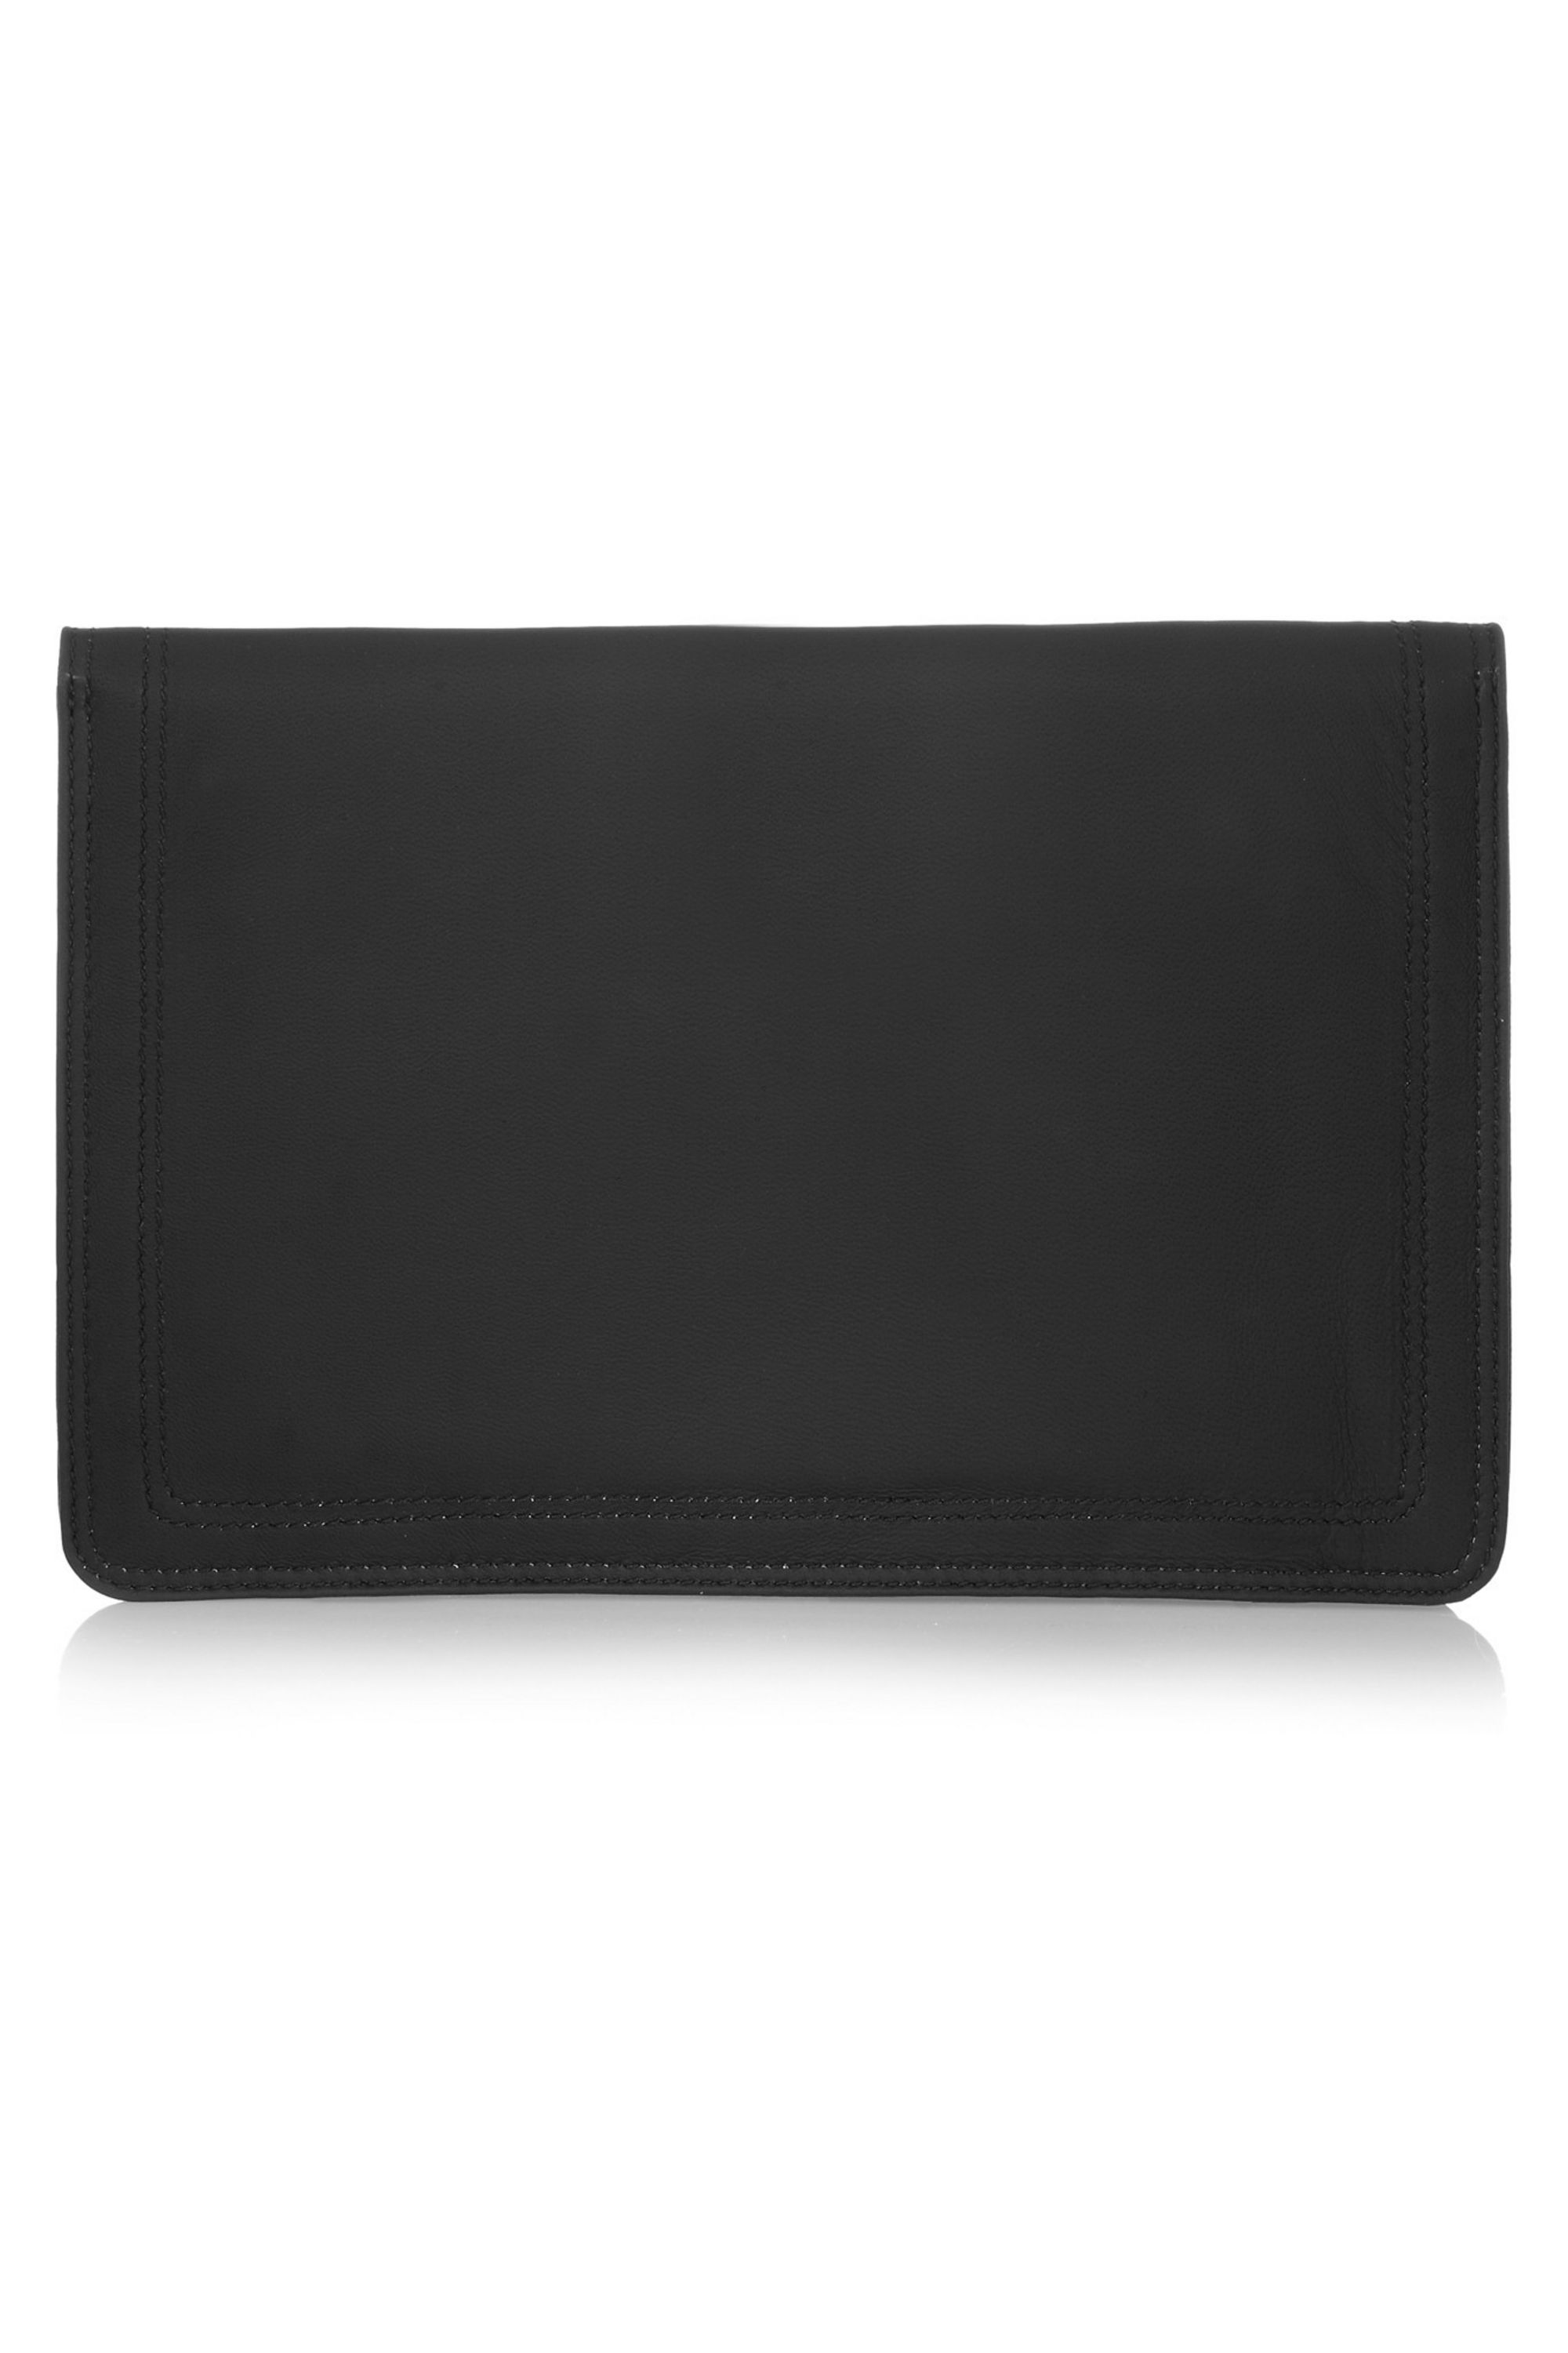 Givenchy Clutch in Bambi-printed black nappa leather